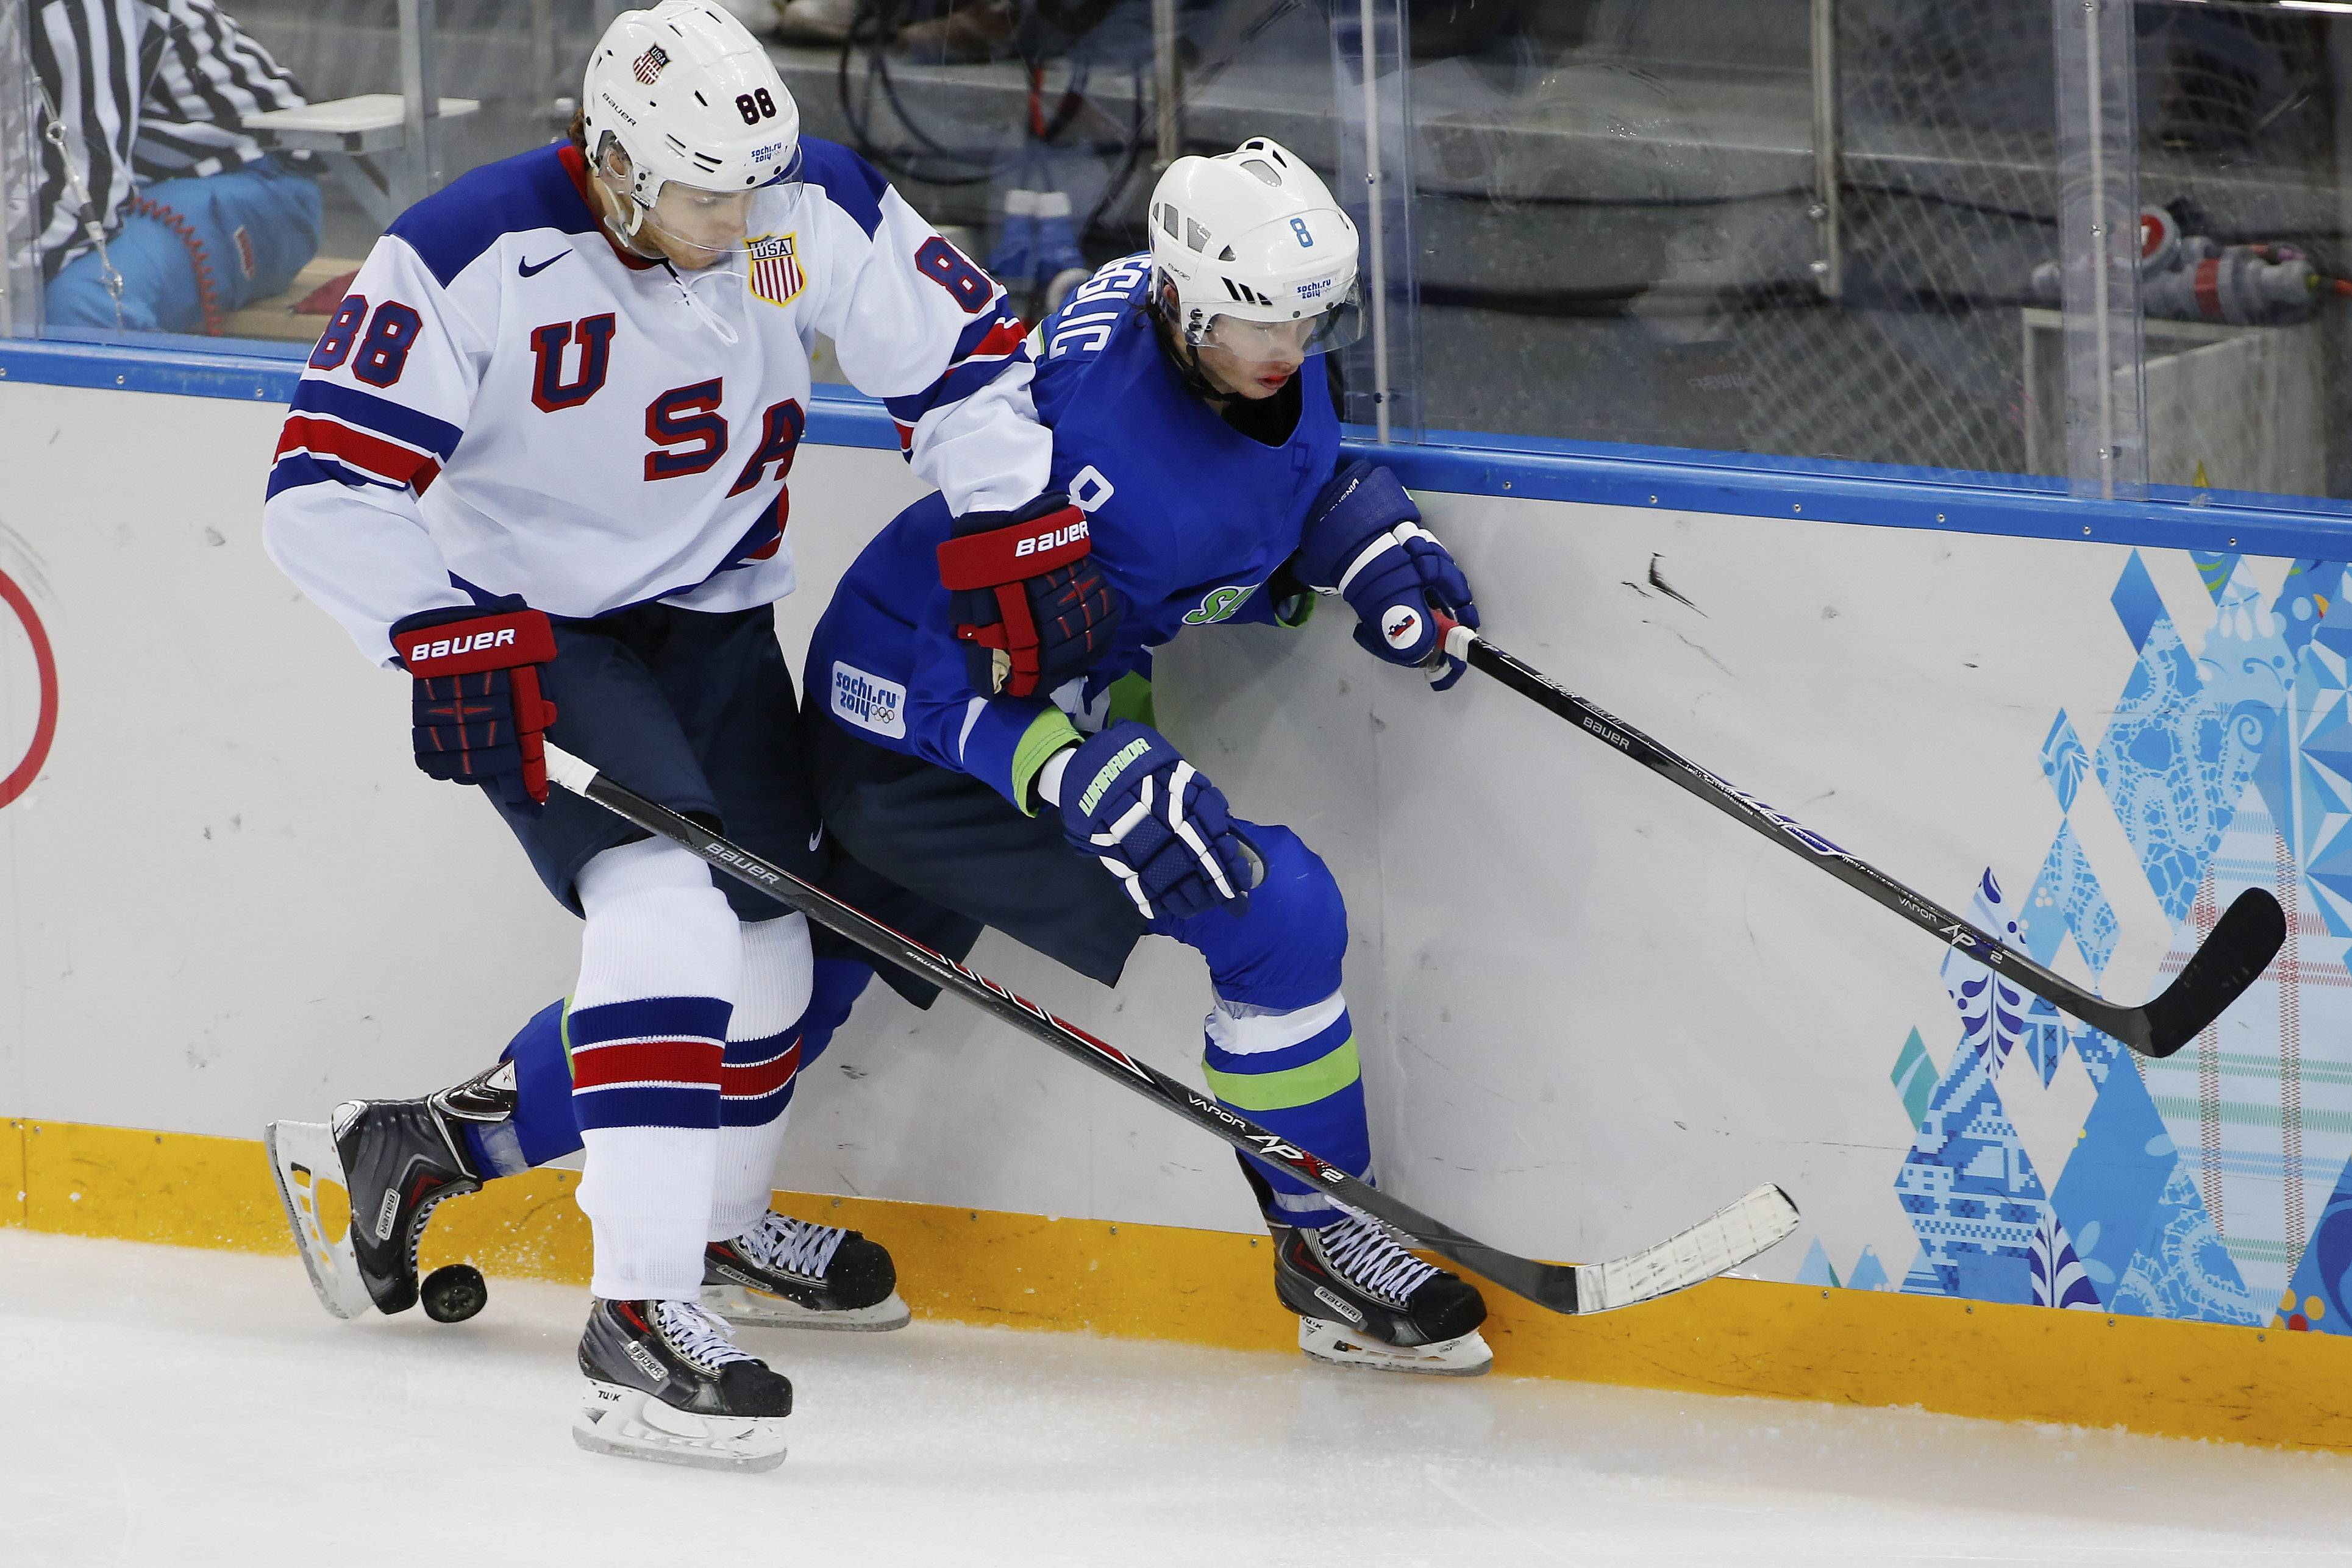 U.S. forward Patrick Kane pins Slovenia forward Ziga Jeglic against the boards during the 2014 Winter Olympics men's ice hockey game at Shayba Arena Sunday.